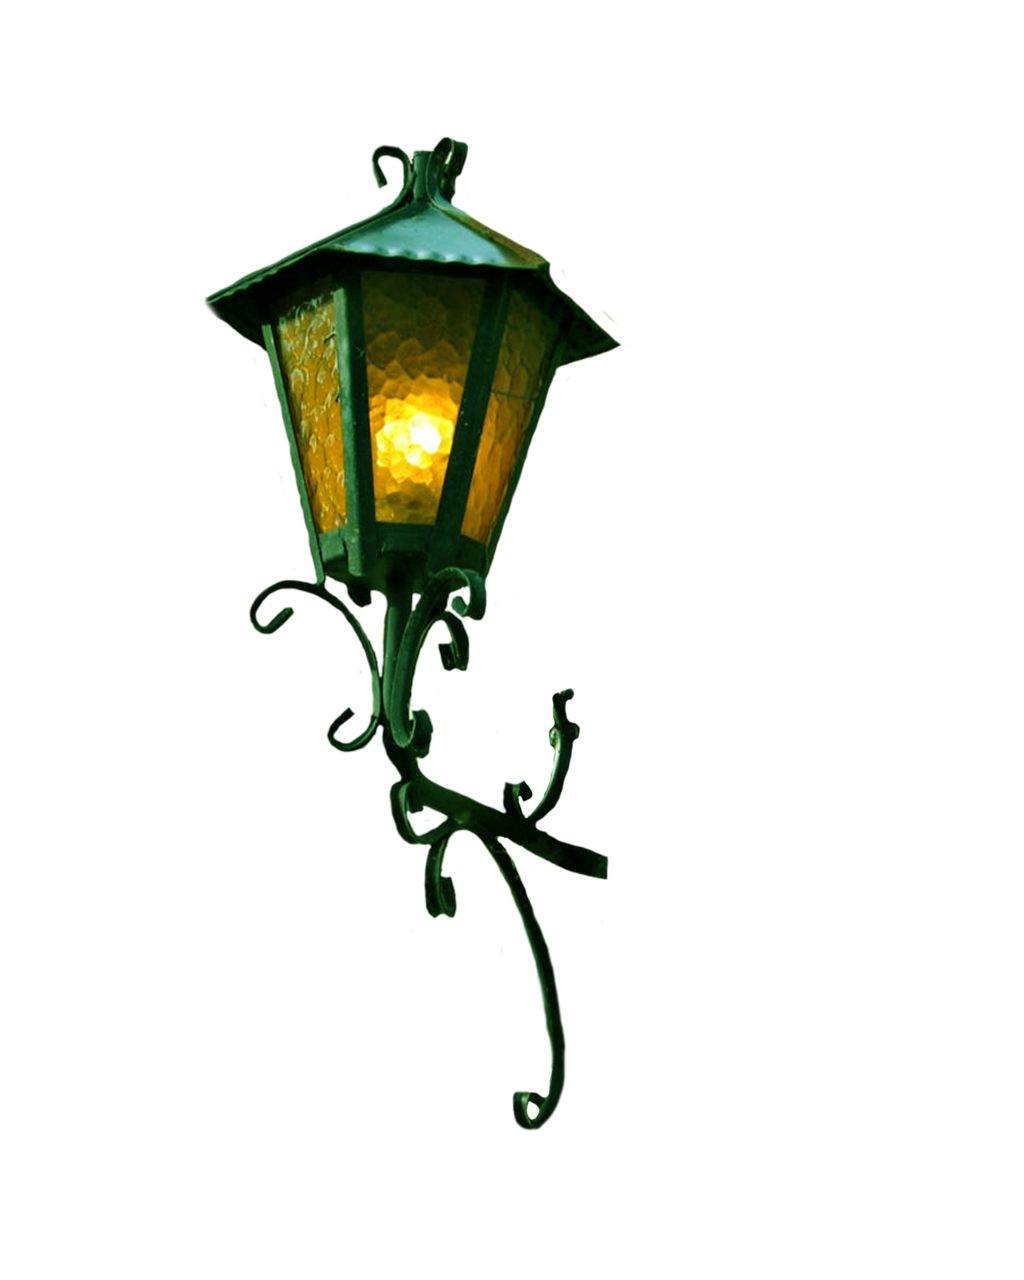 Wall Lamp Png by Moonglowlilly.deviantart.com on @deviantART.